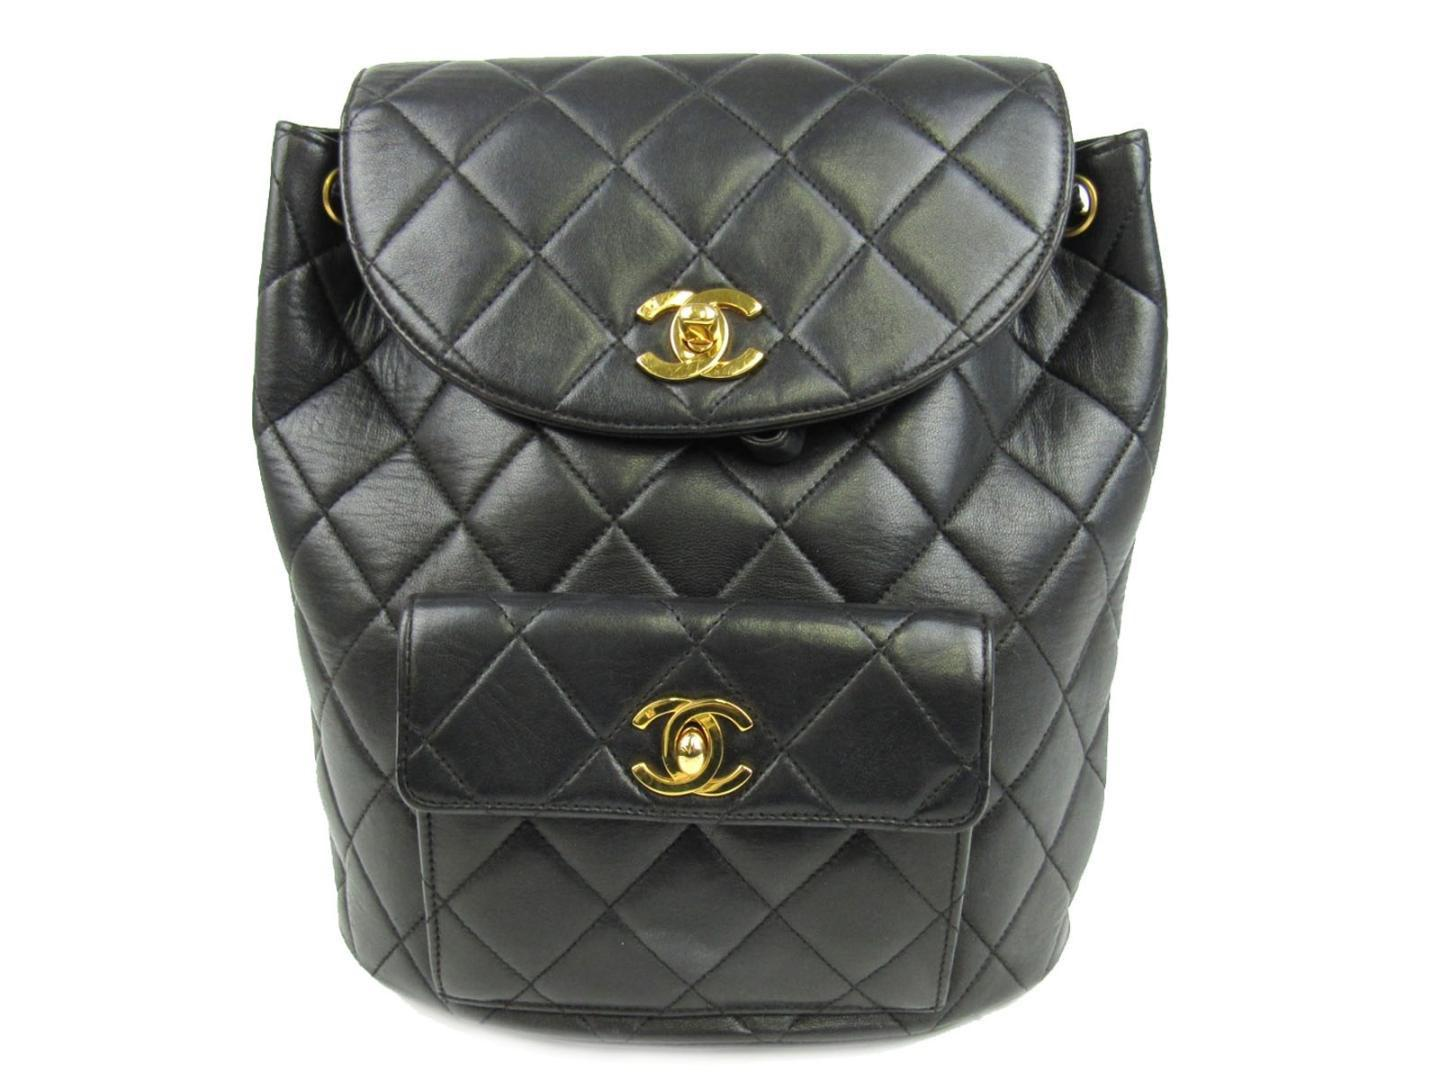 1638d95067e5 Chanel Matelasse Chain Backpack Cc Black Lambskin Leather Quilted in ...